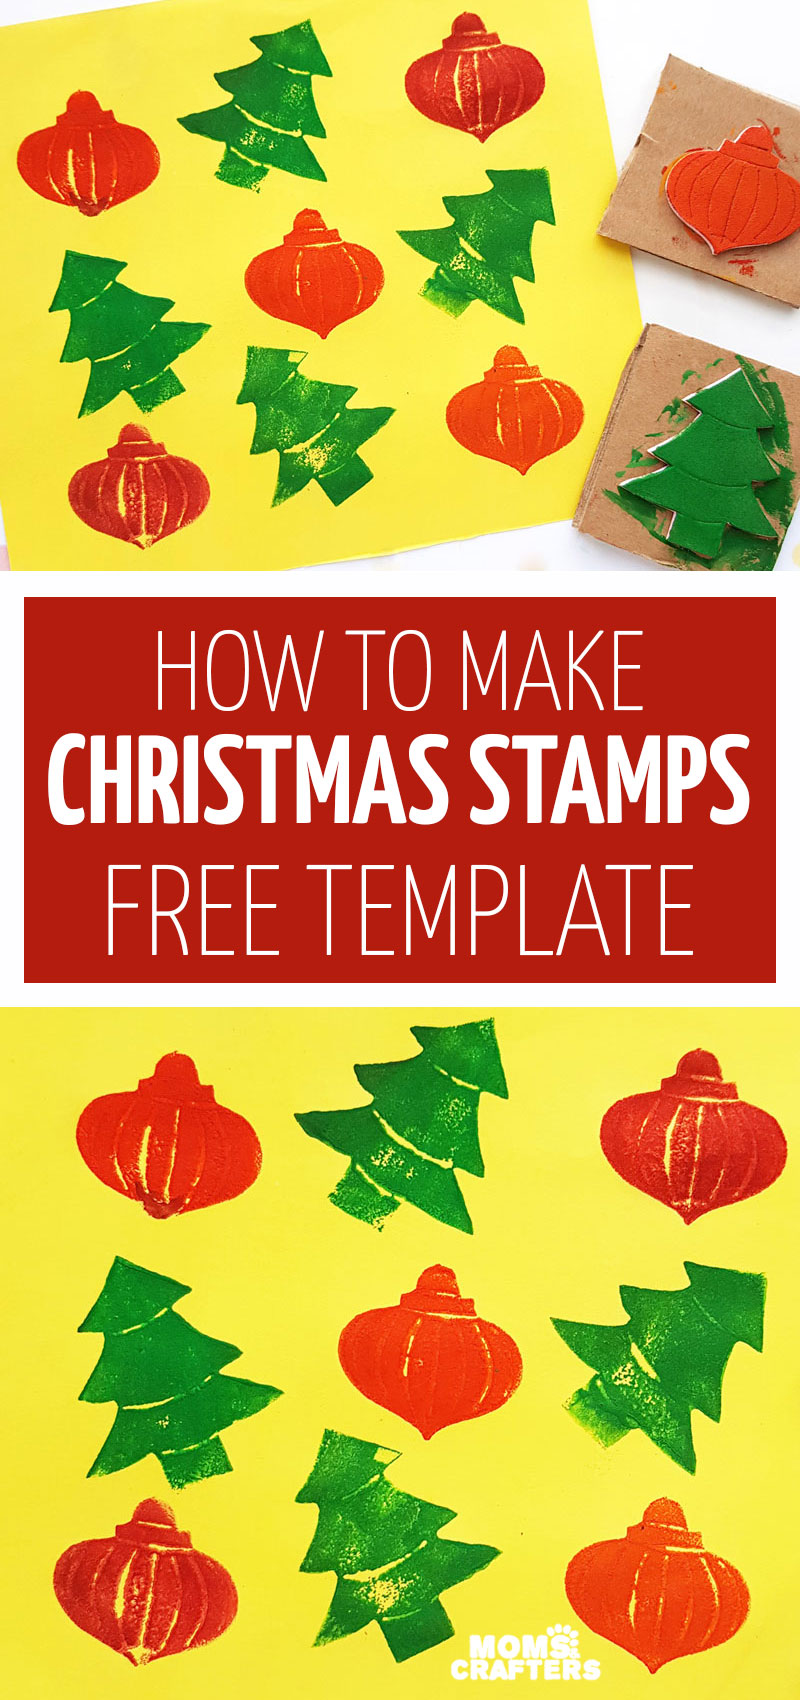 Click to learn how to make Christmas stamps with a free printable template! crate your own DIY wrapping paper with this upcycled tutorial.